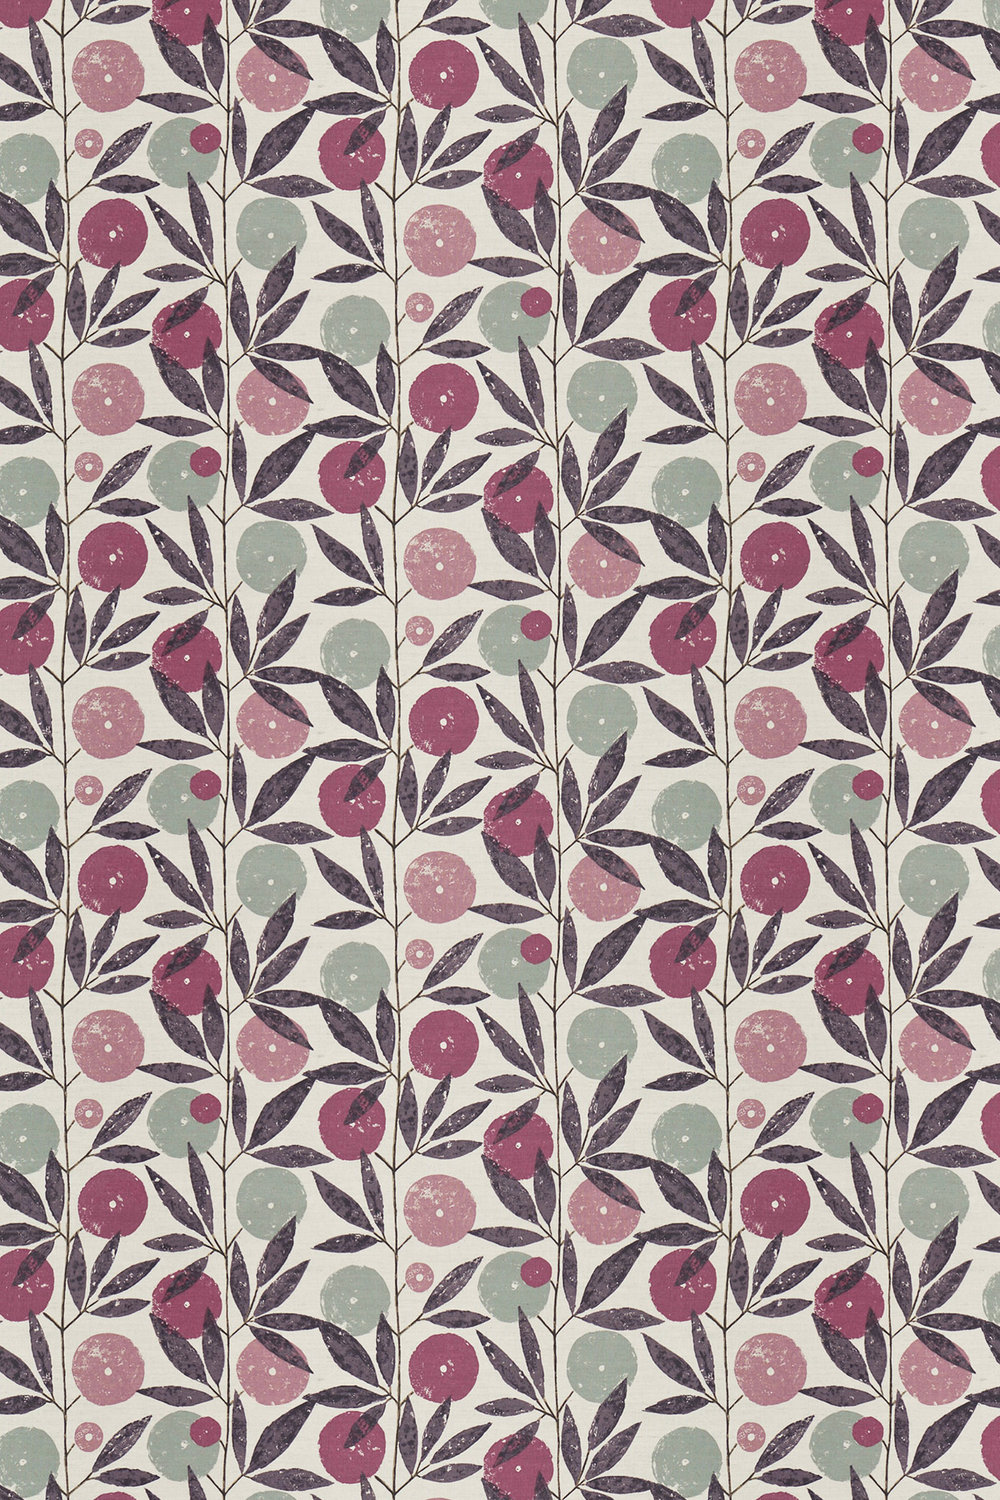 Blomma Fabric - Heather, Damson and Stone - by Scion